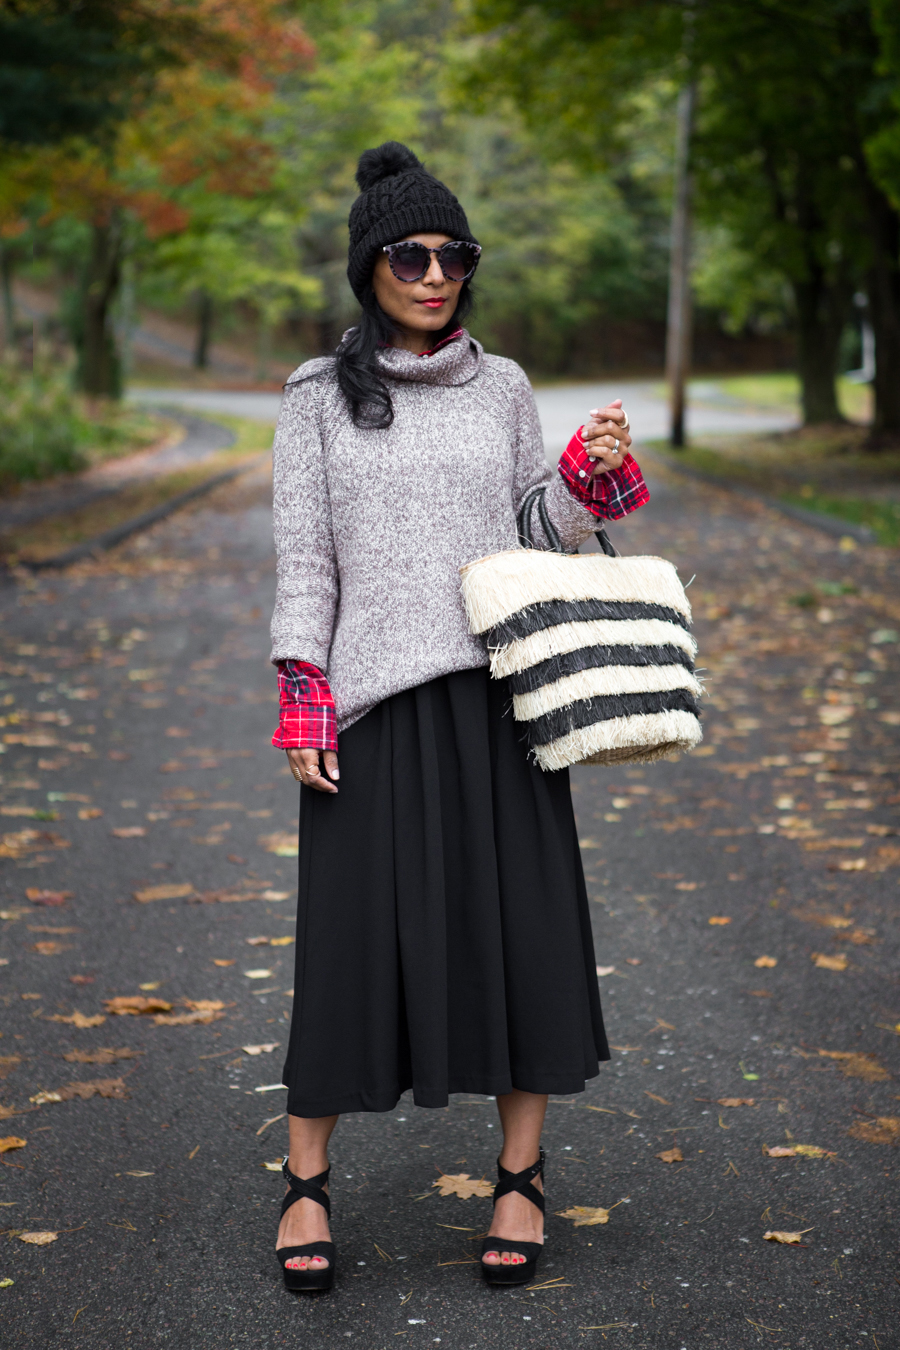 fall fashion, style tips, nordstrom, petite fashion, fall sweaters, chunky knits, plaid, fall beanie, pompom, straw tote, suede sandals, texture, petite blogger, how to style fall looks, targetstyle